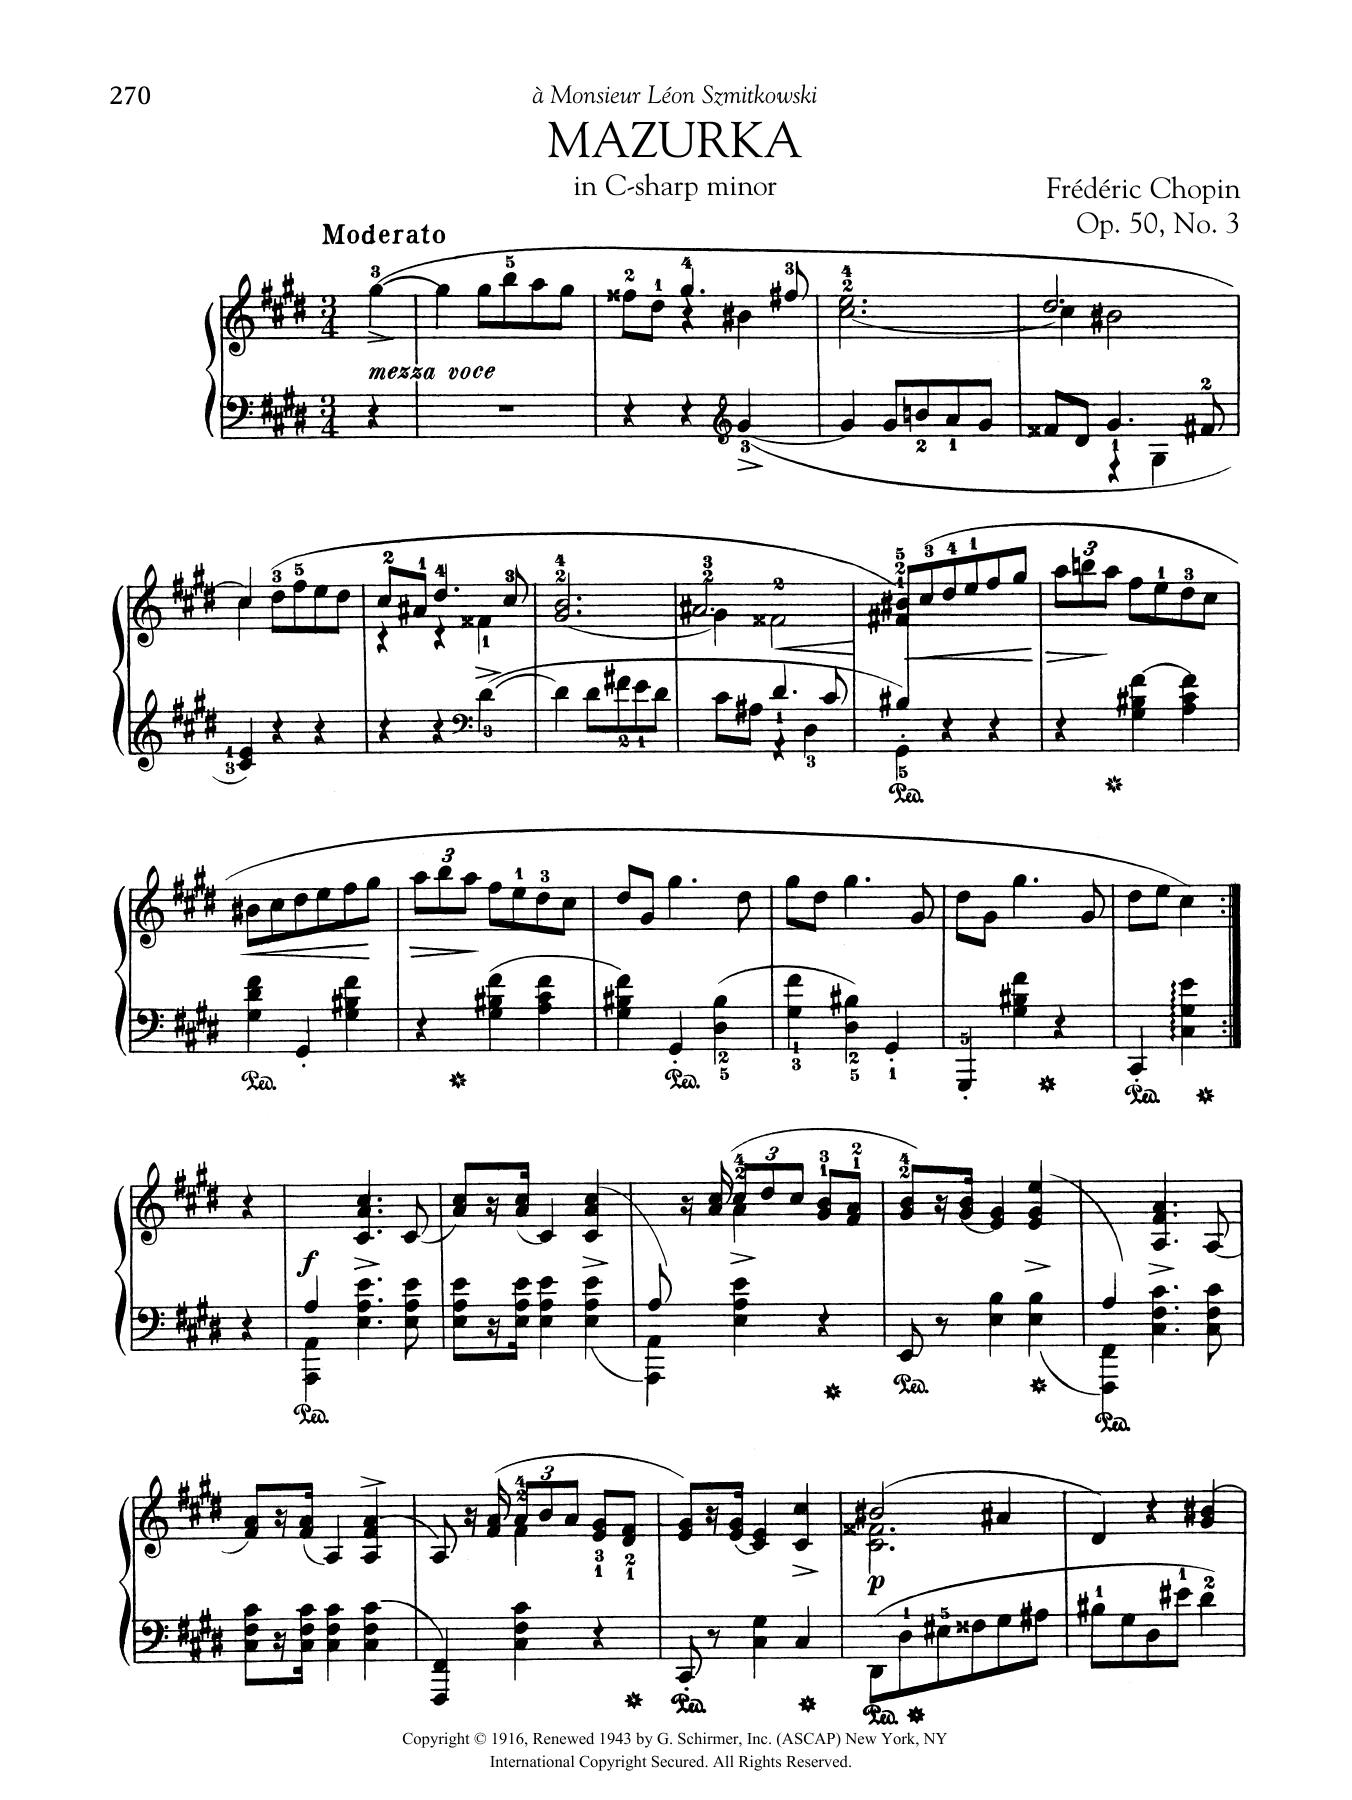 Mazurka in C-sharp minor, Op. 50, No. 3 Sheet Music